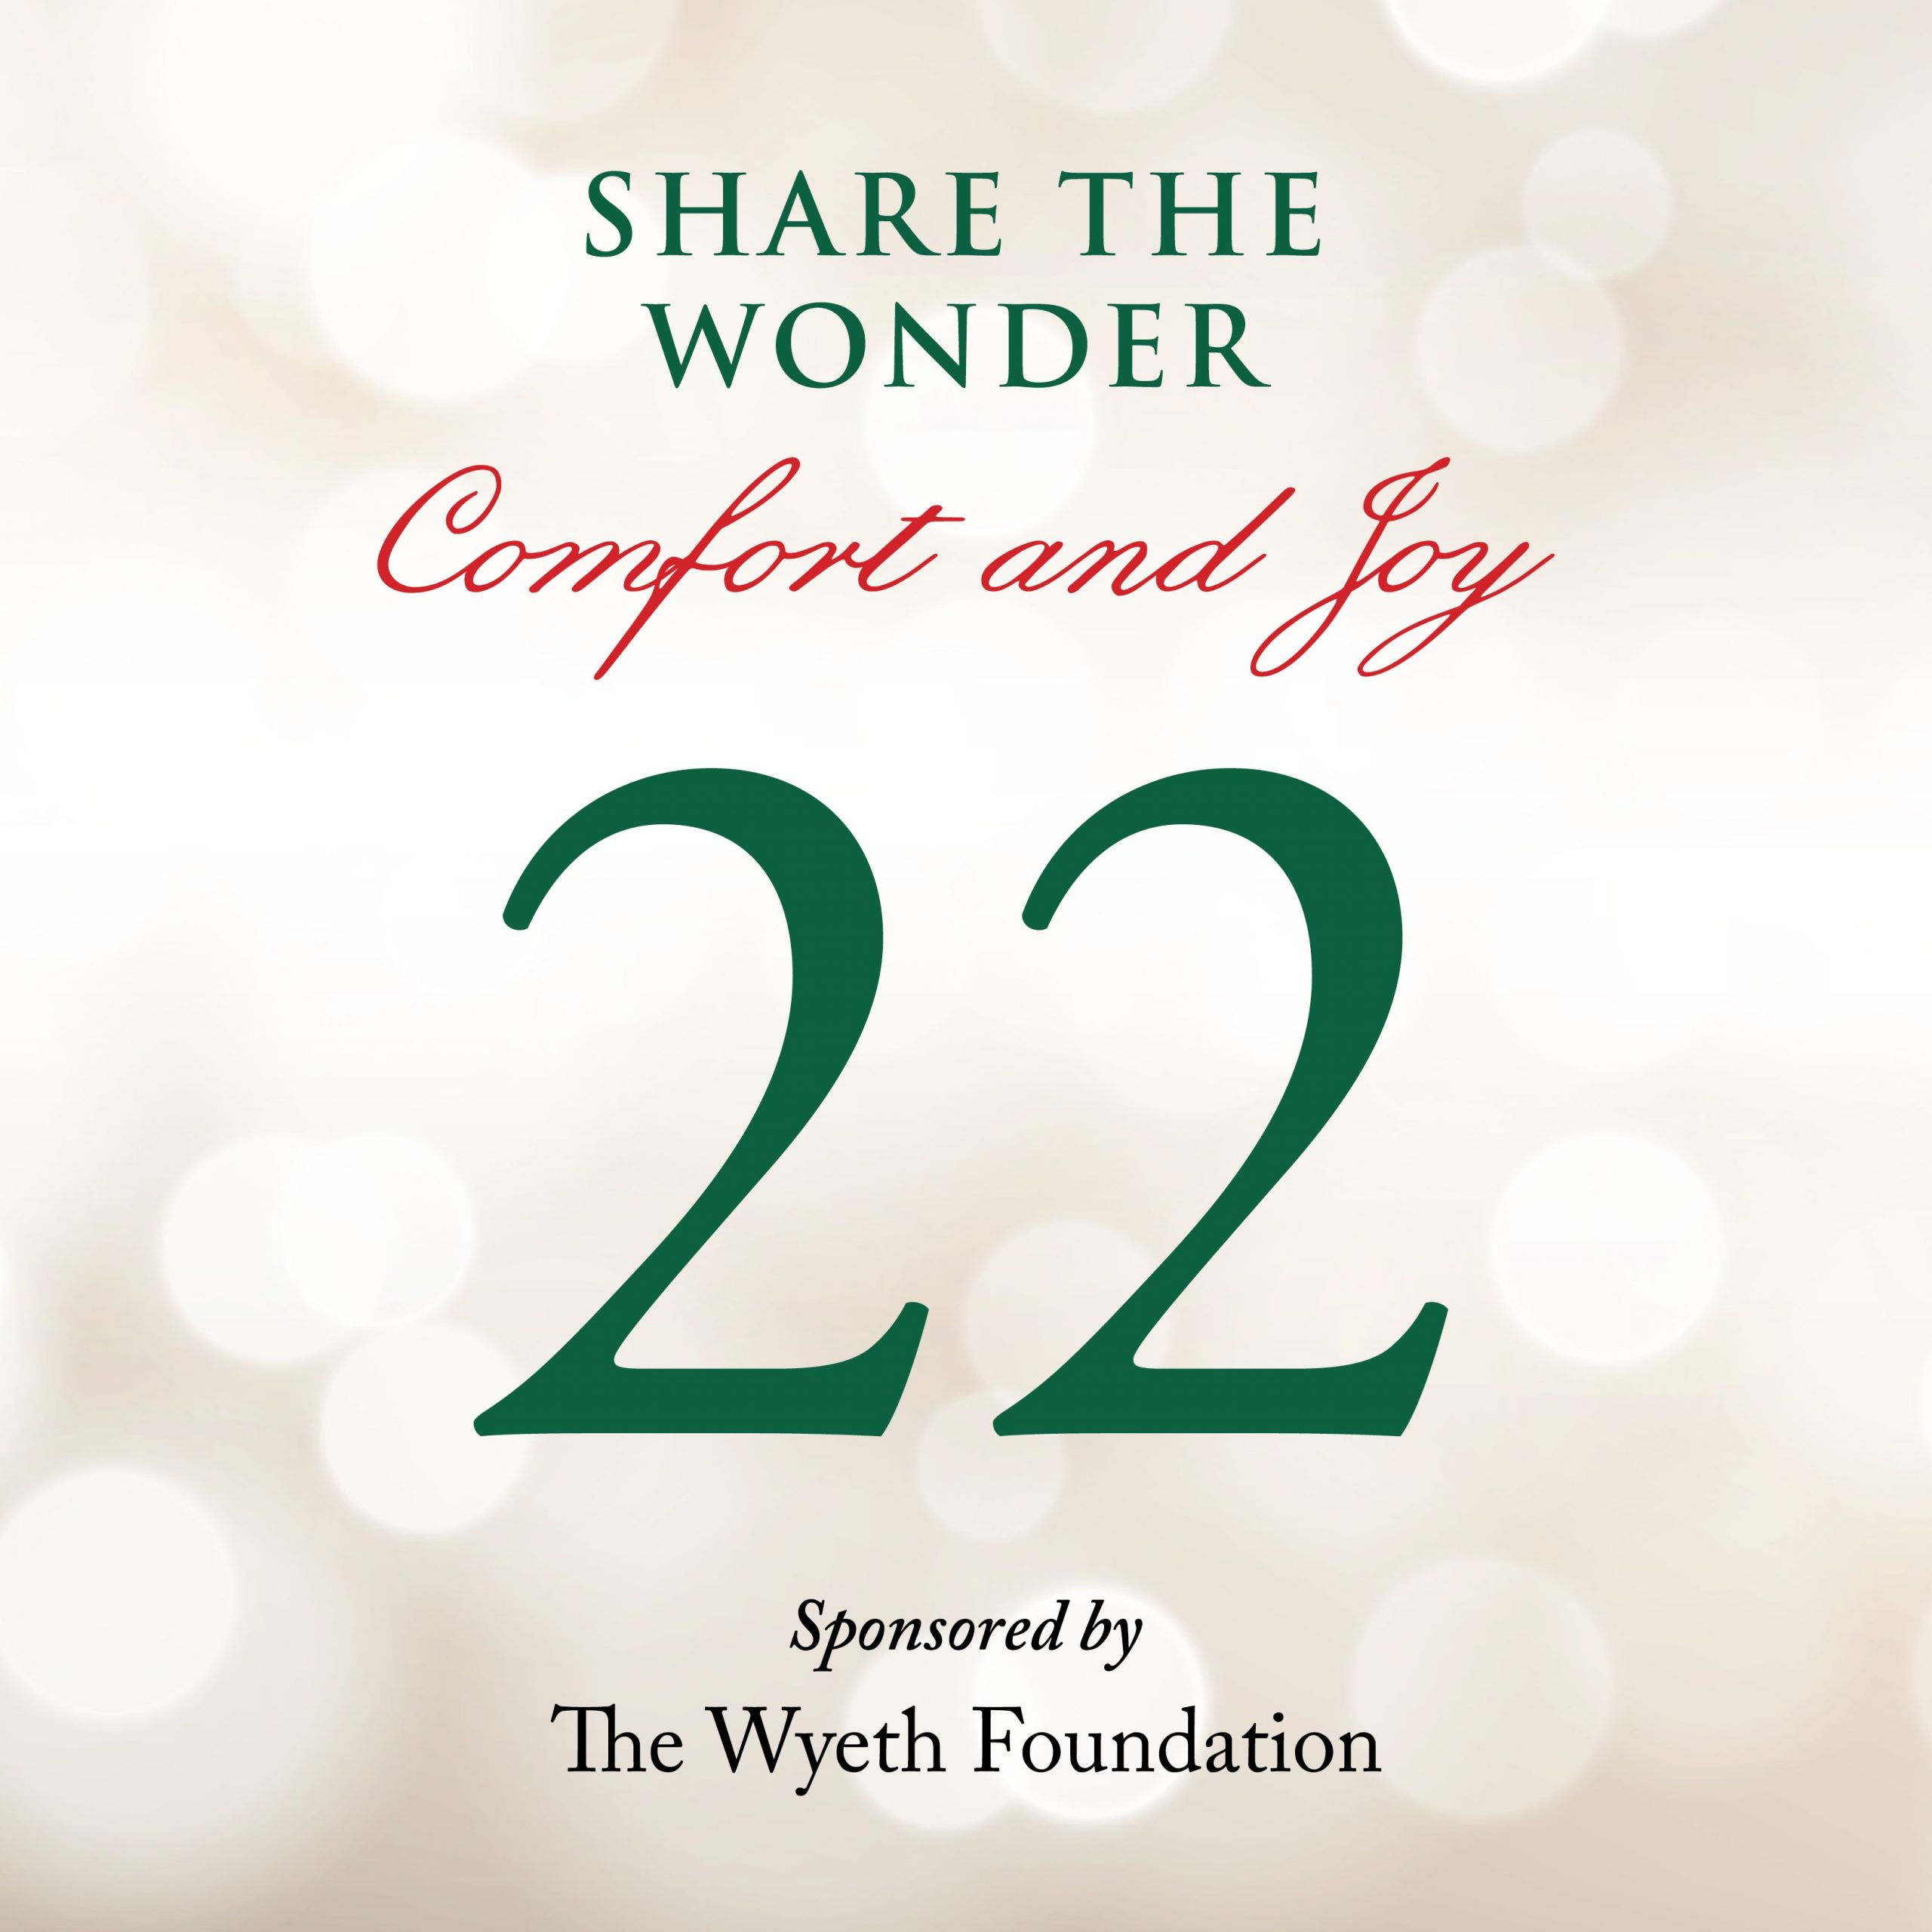 Day 22 of Share the Wonder: December 19